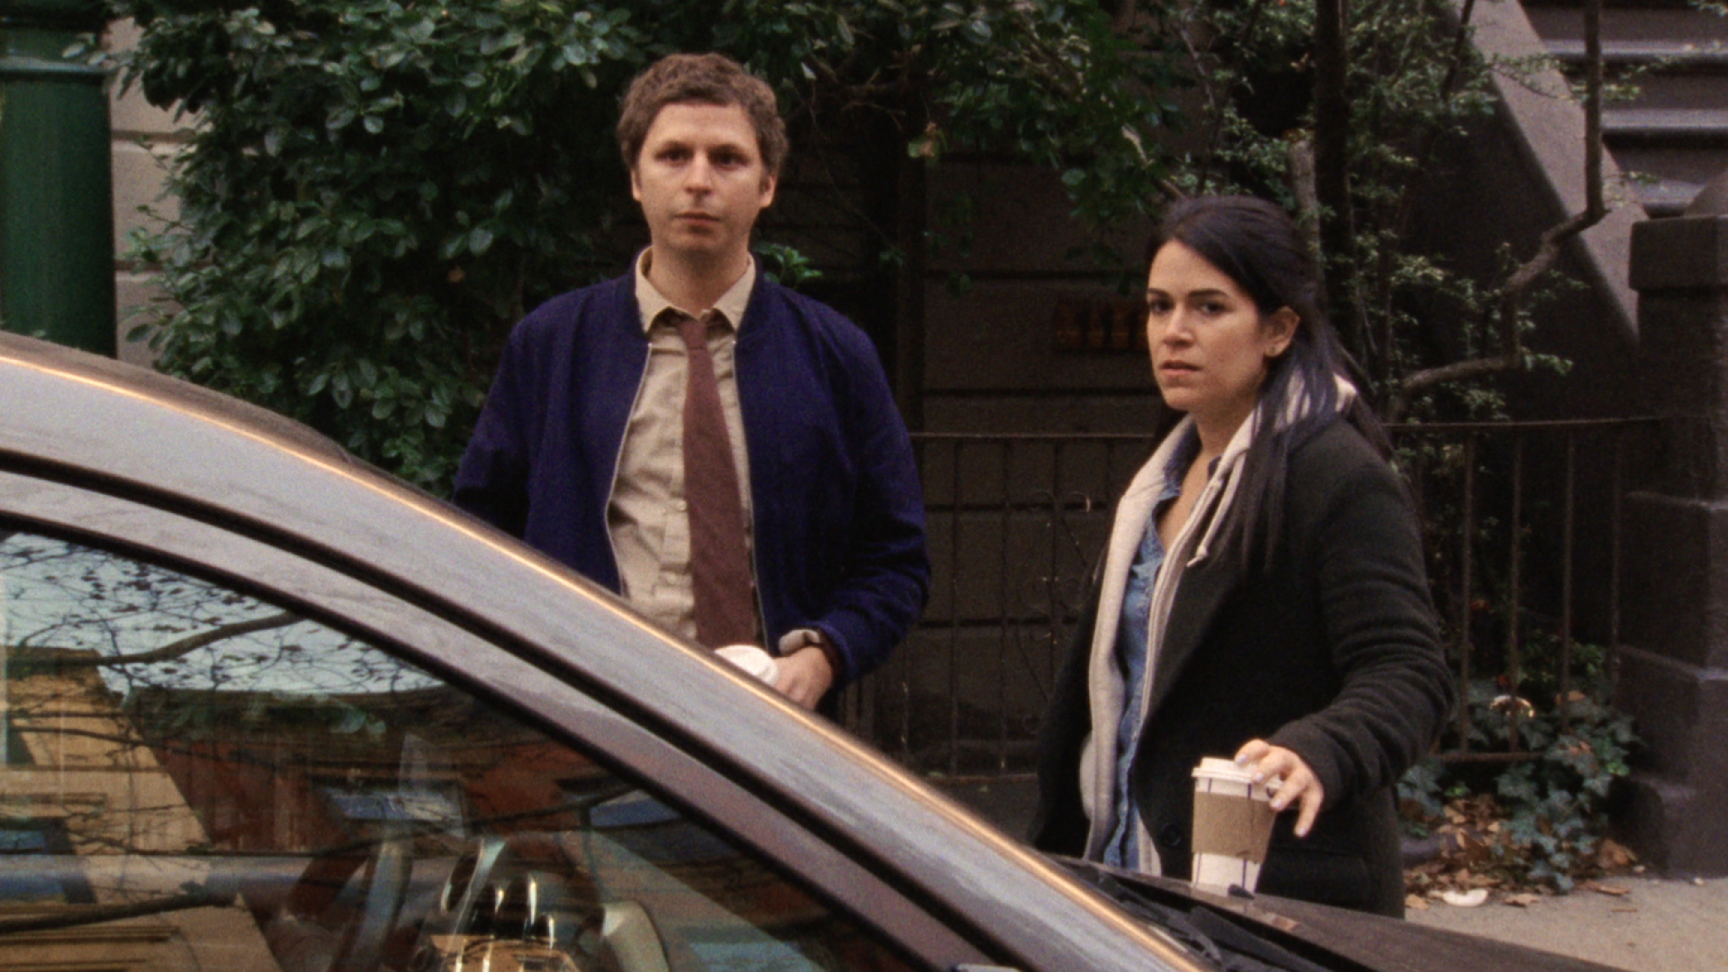 Michael Cera and Abbi Jacobson in Person to Person (2017)